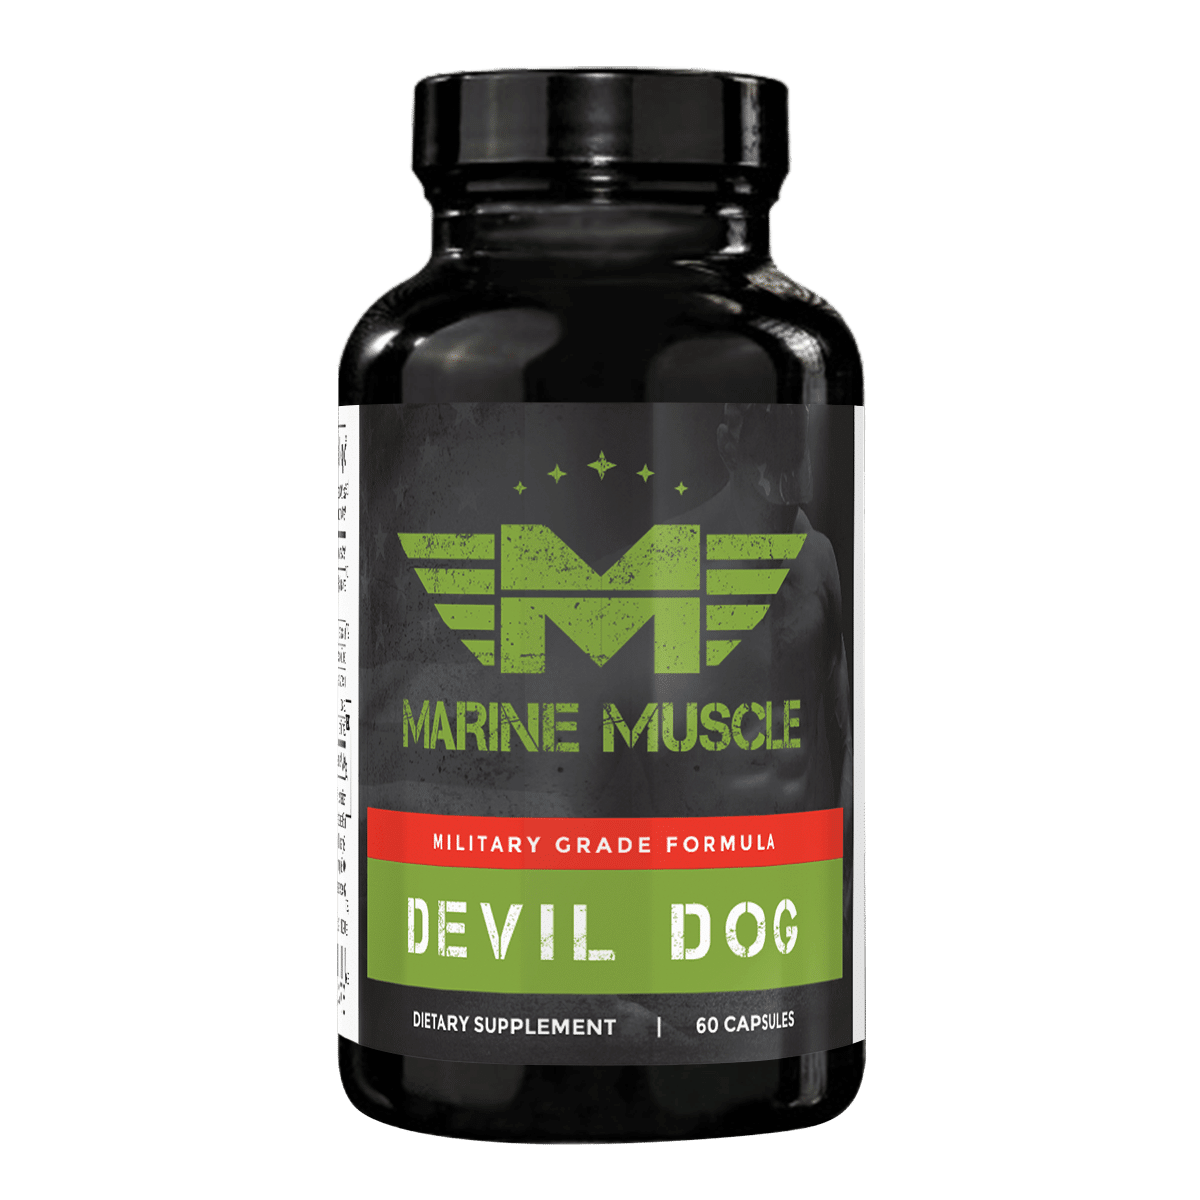 Where to buy Marine Muscle Devil Dog.